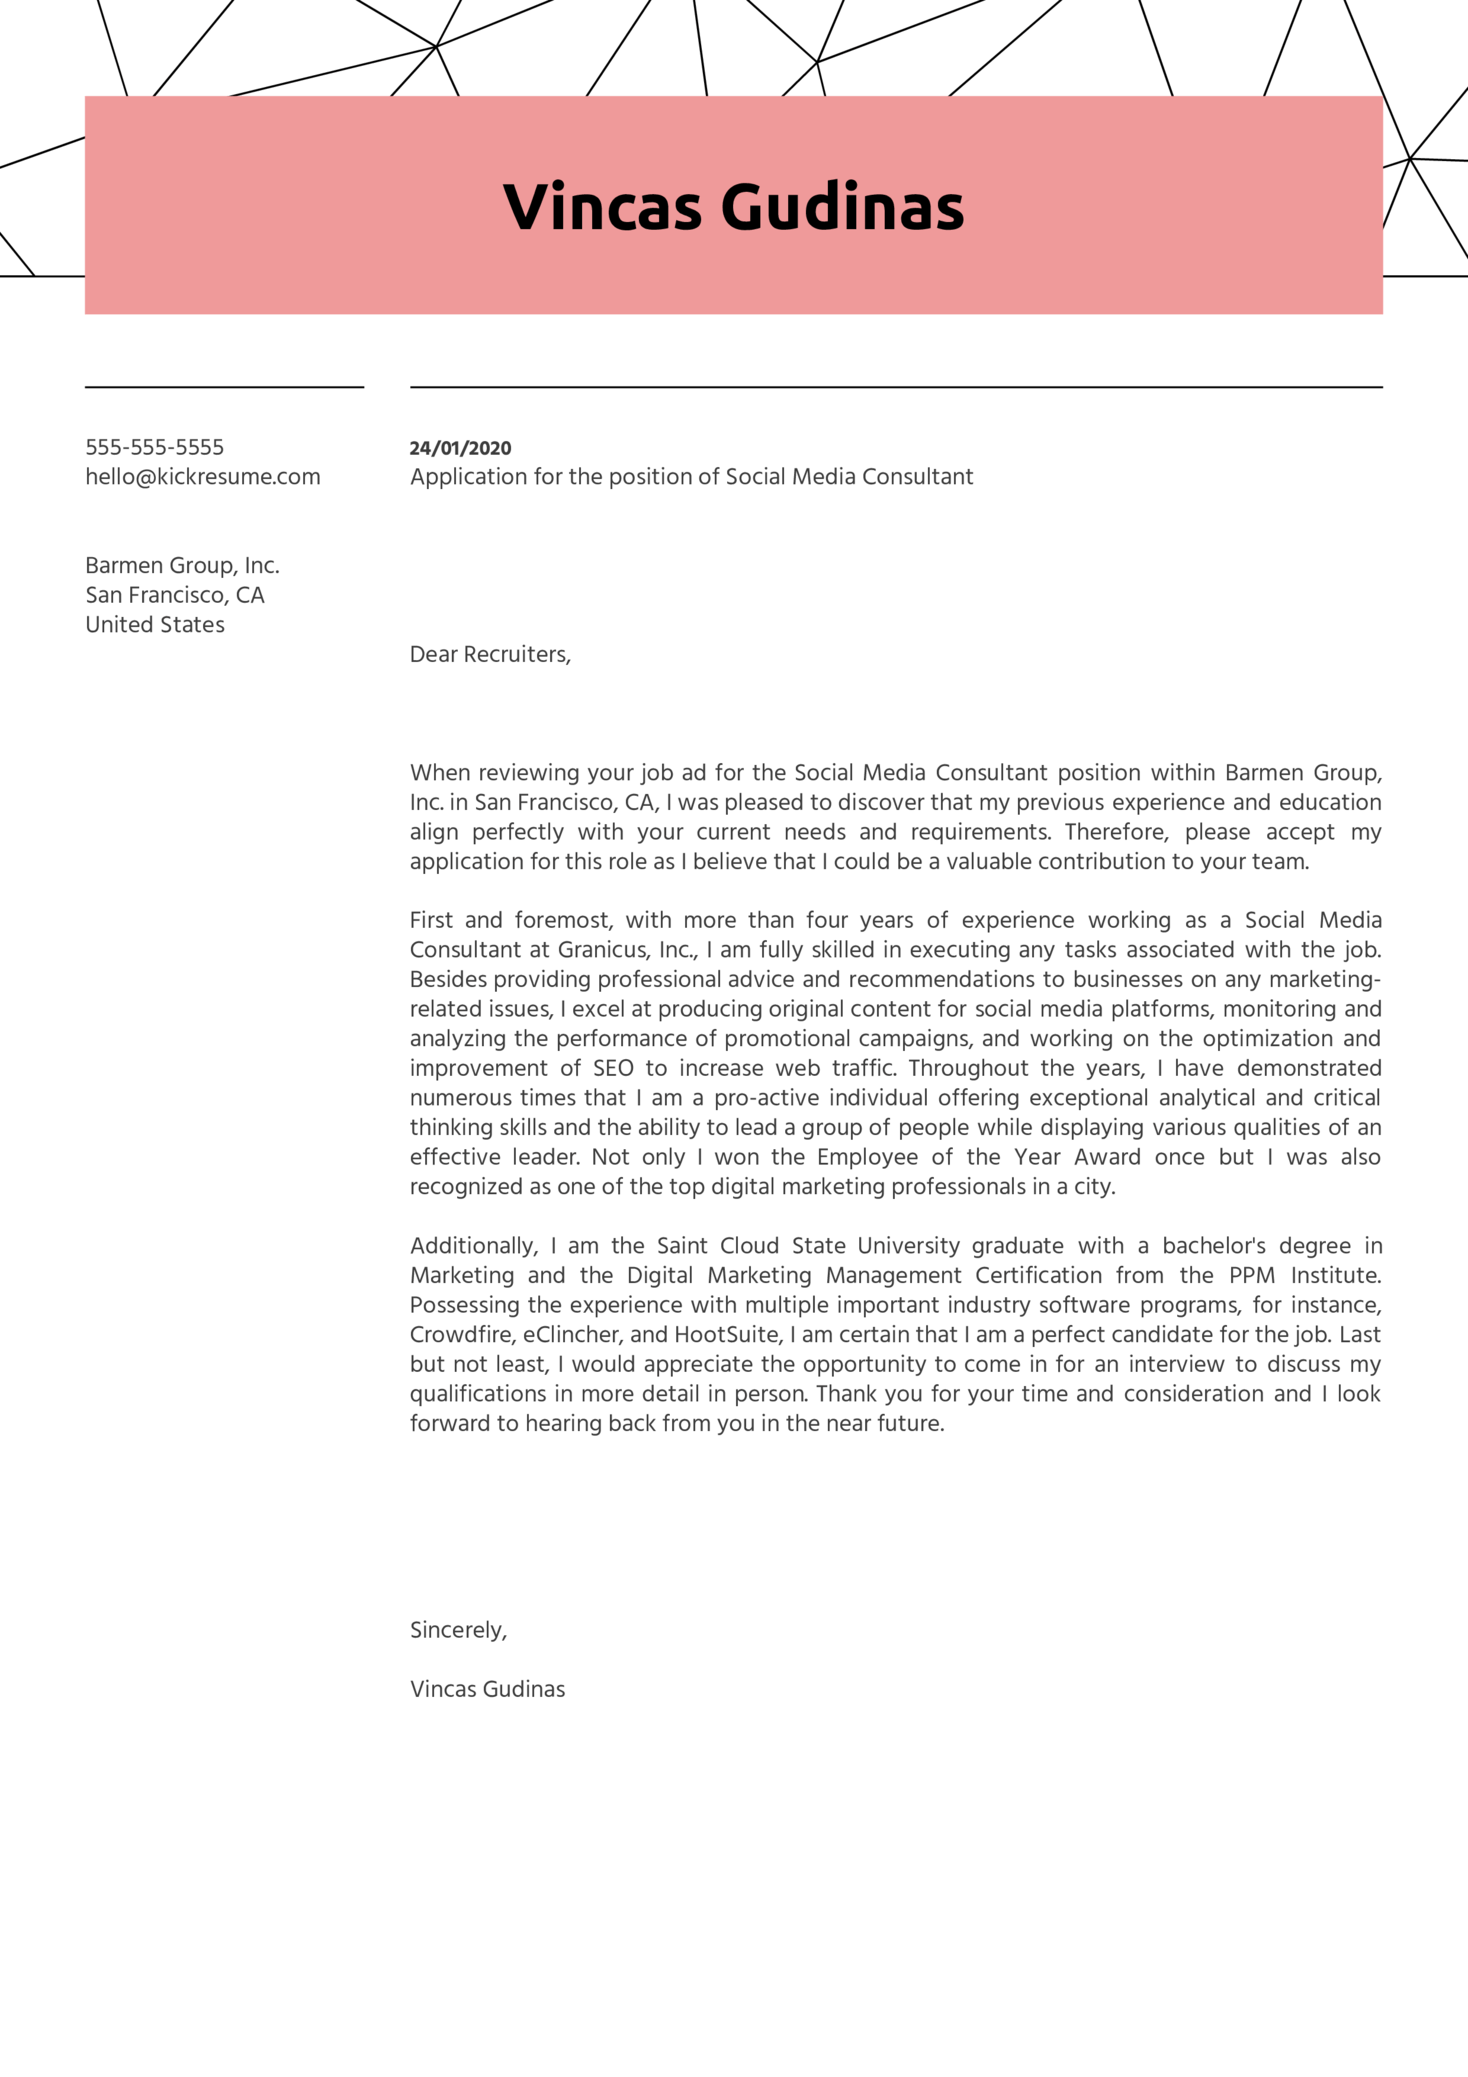 Social Media Consultant Cover Letter Example